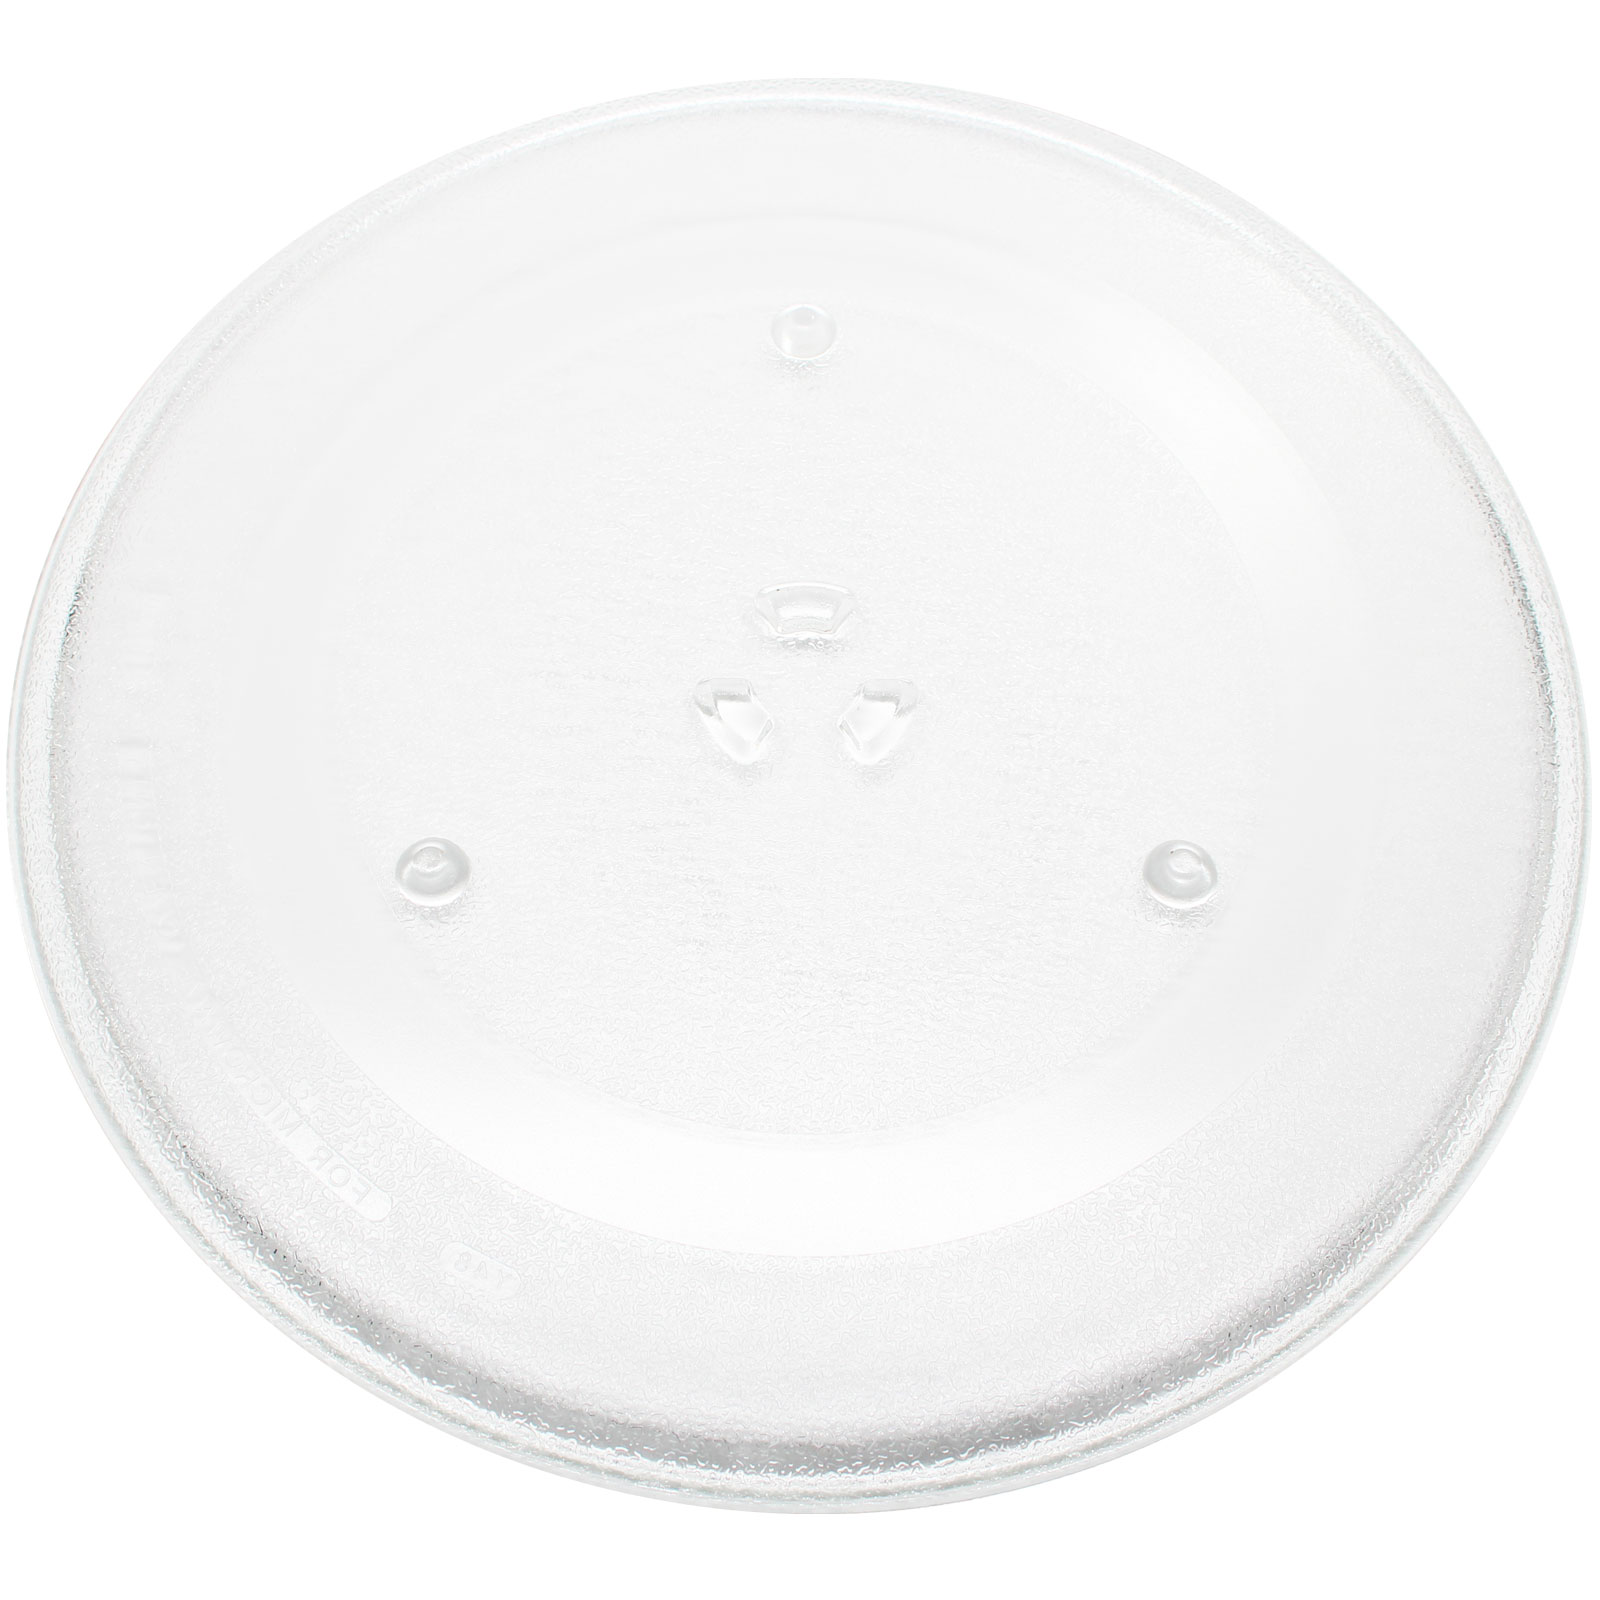 "Replacement Samsung MR6698WB Microwave Glass Plate - Compatible Samsung DE74-20002 Microwave Glass Turntable Tray - 14 1/8"" (359 mm) - image 1 of 4"